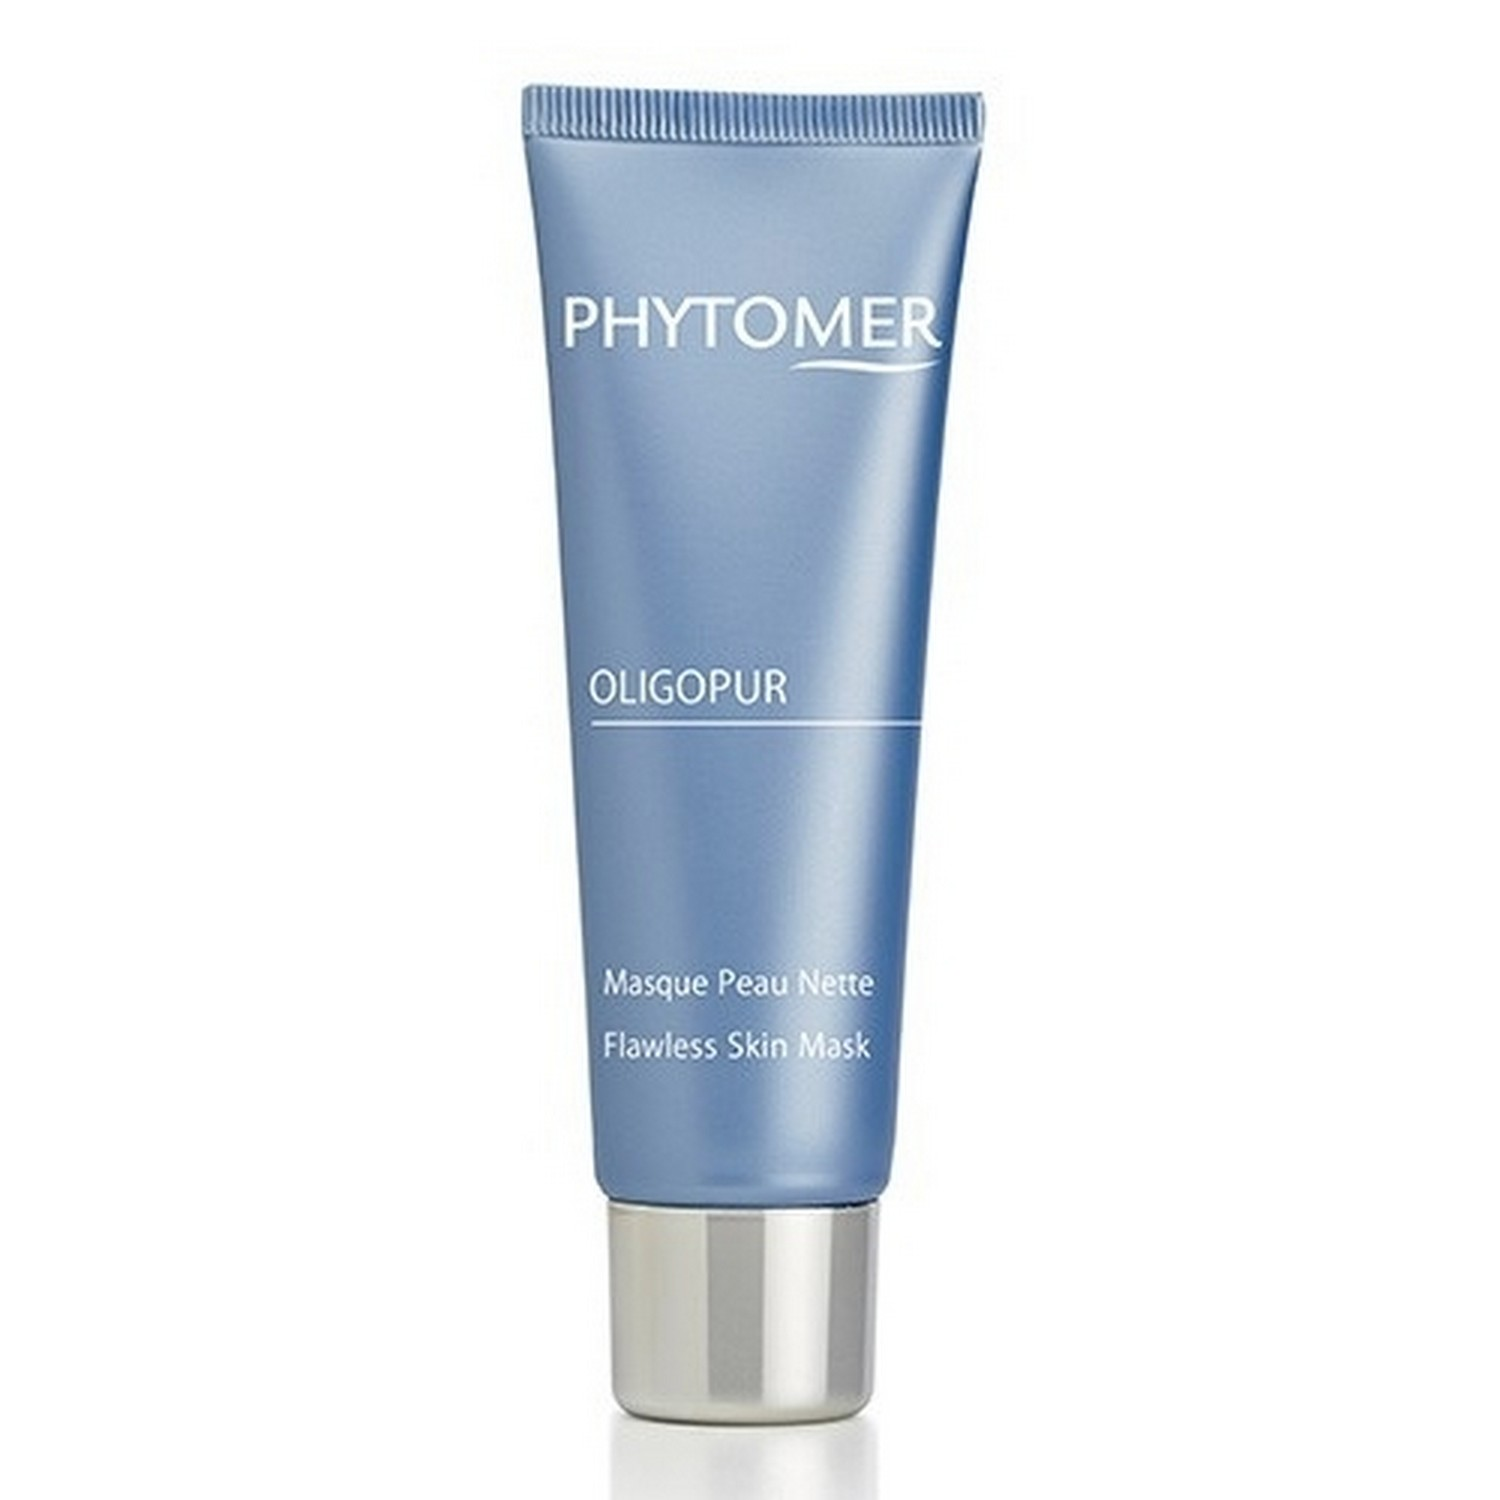 Phytomer OLIGOPUR Flawless Skin Mask (50 ml)